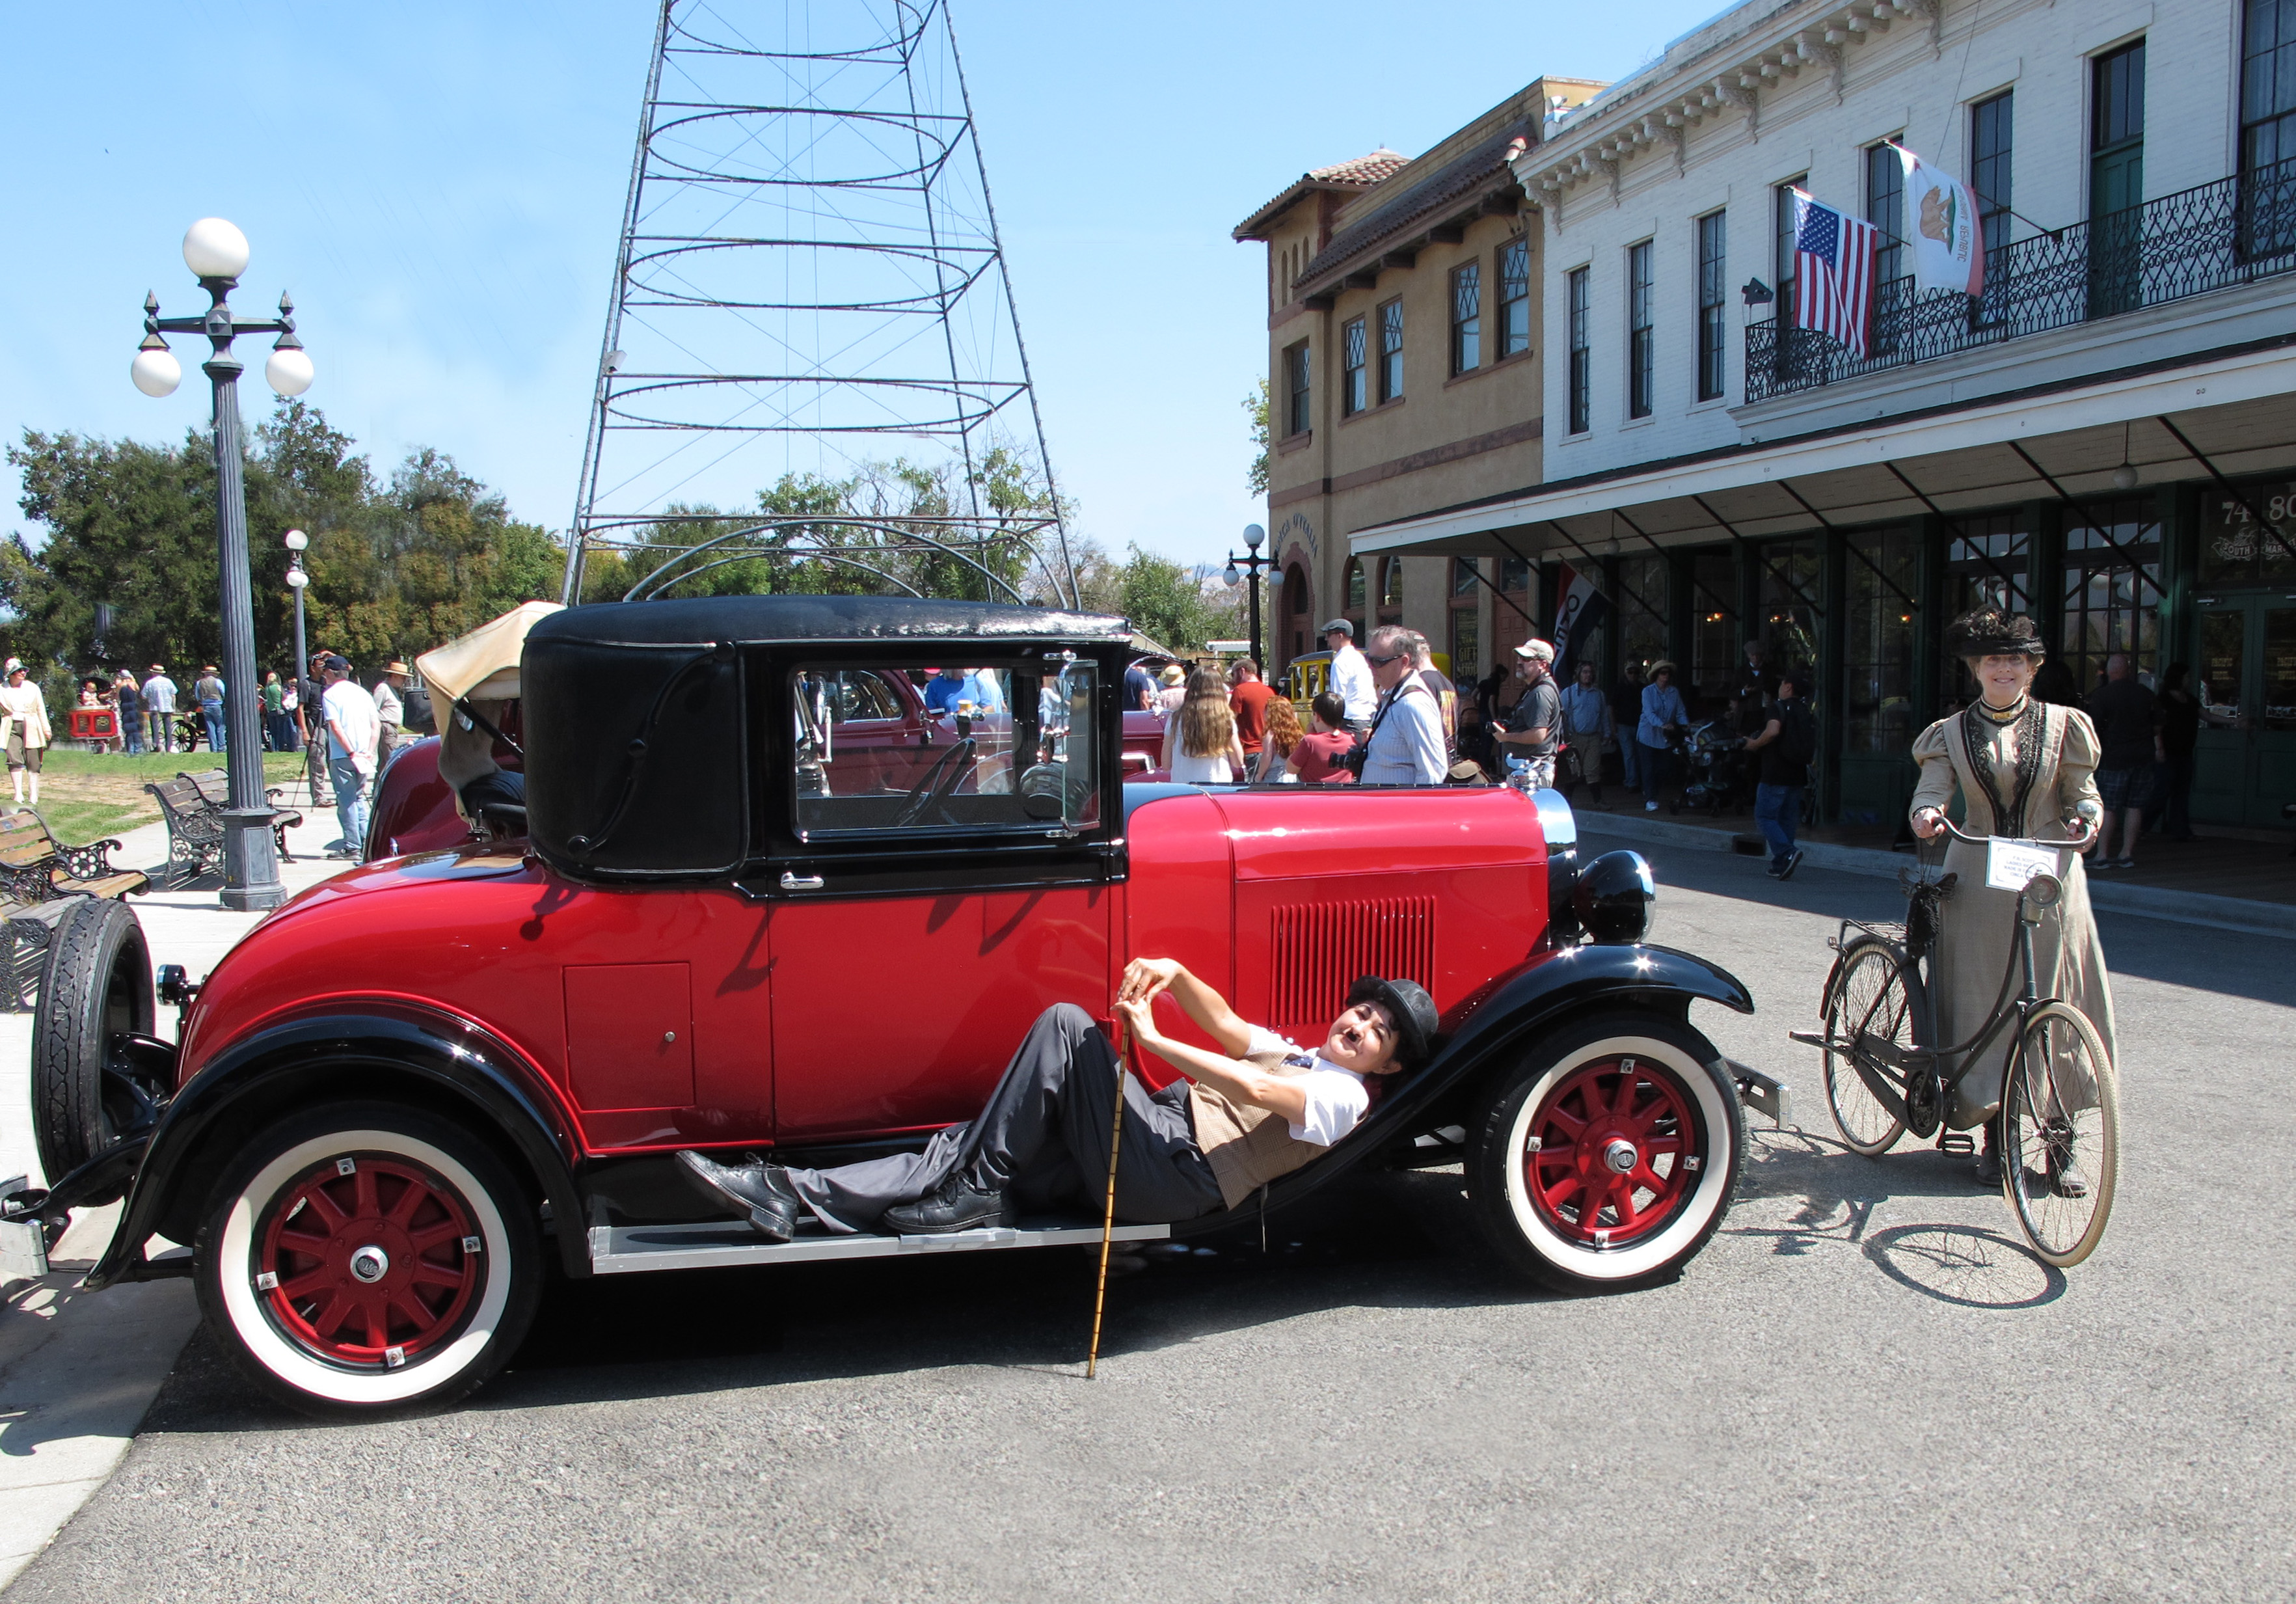 17th Annual Antique Autos in History Park – History San Jose